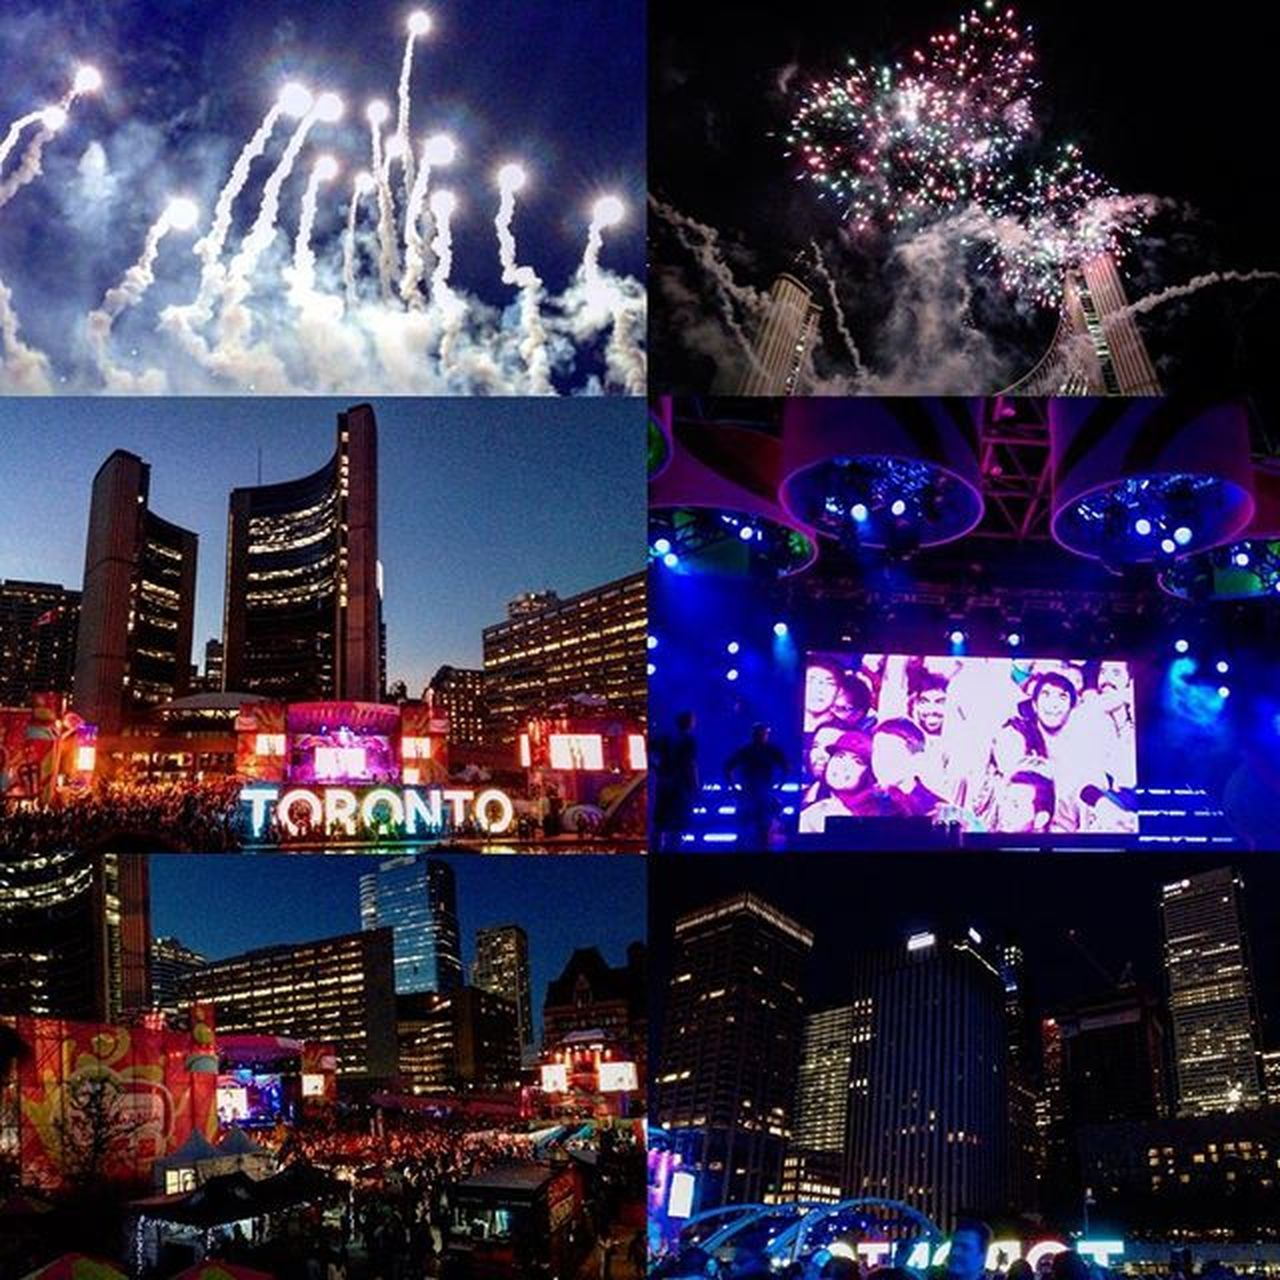 the roots concert was cray 😆 Panamania Viewfrommycity To2015 Toronto Fireworks Nathanphilipssquare HostCity2015 Panamgames2015 Theroots FreeConcert Parapanam Mycity The6ix Toptorontophoto